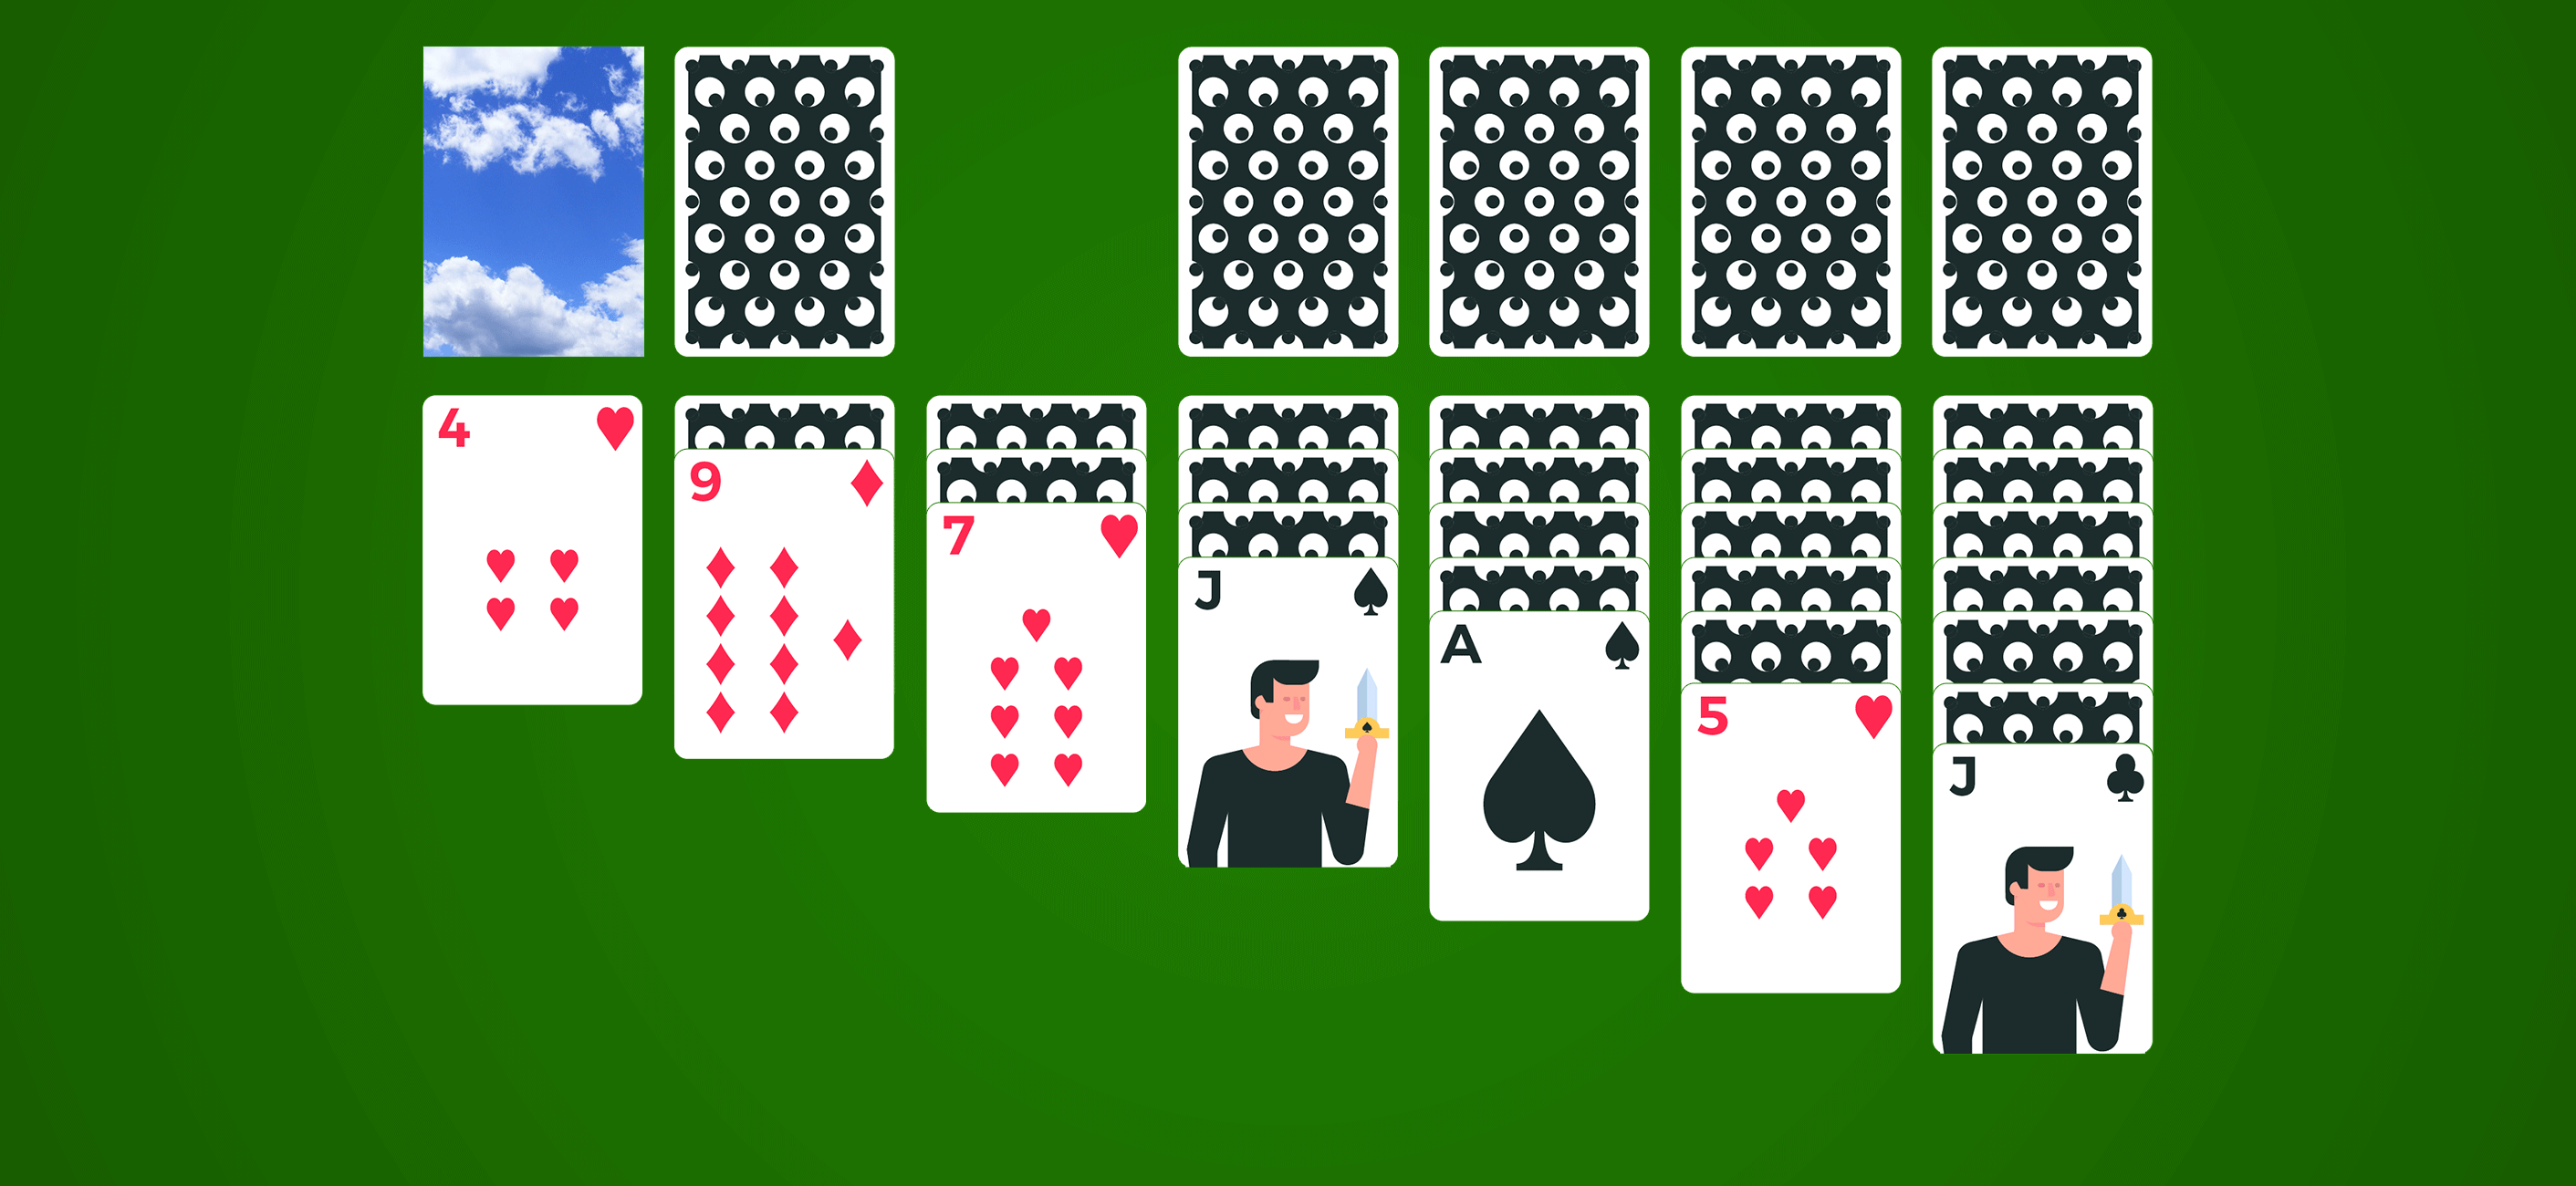 solitaire game play